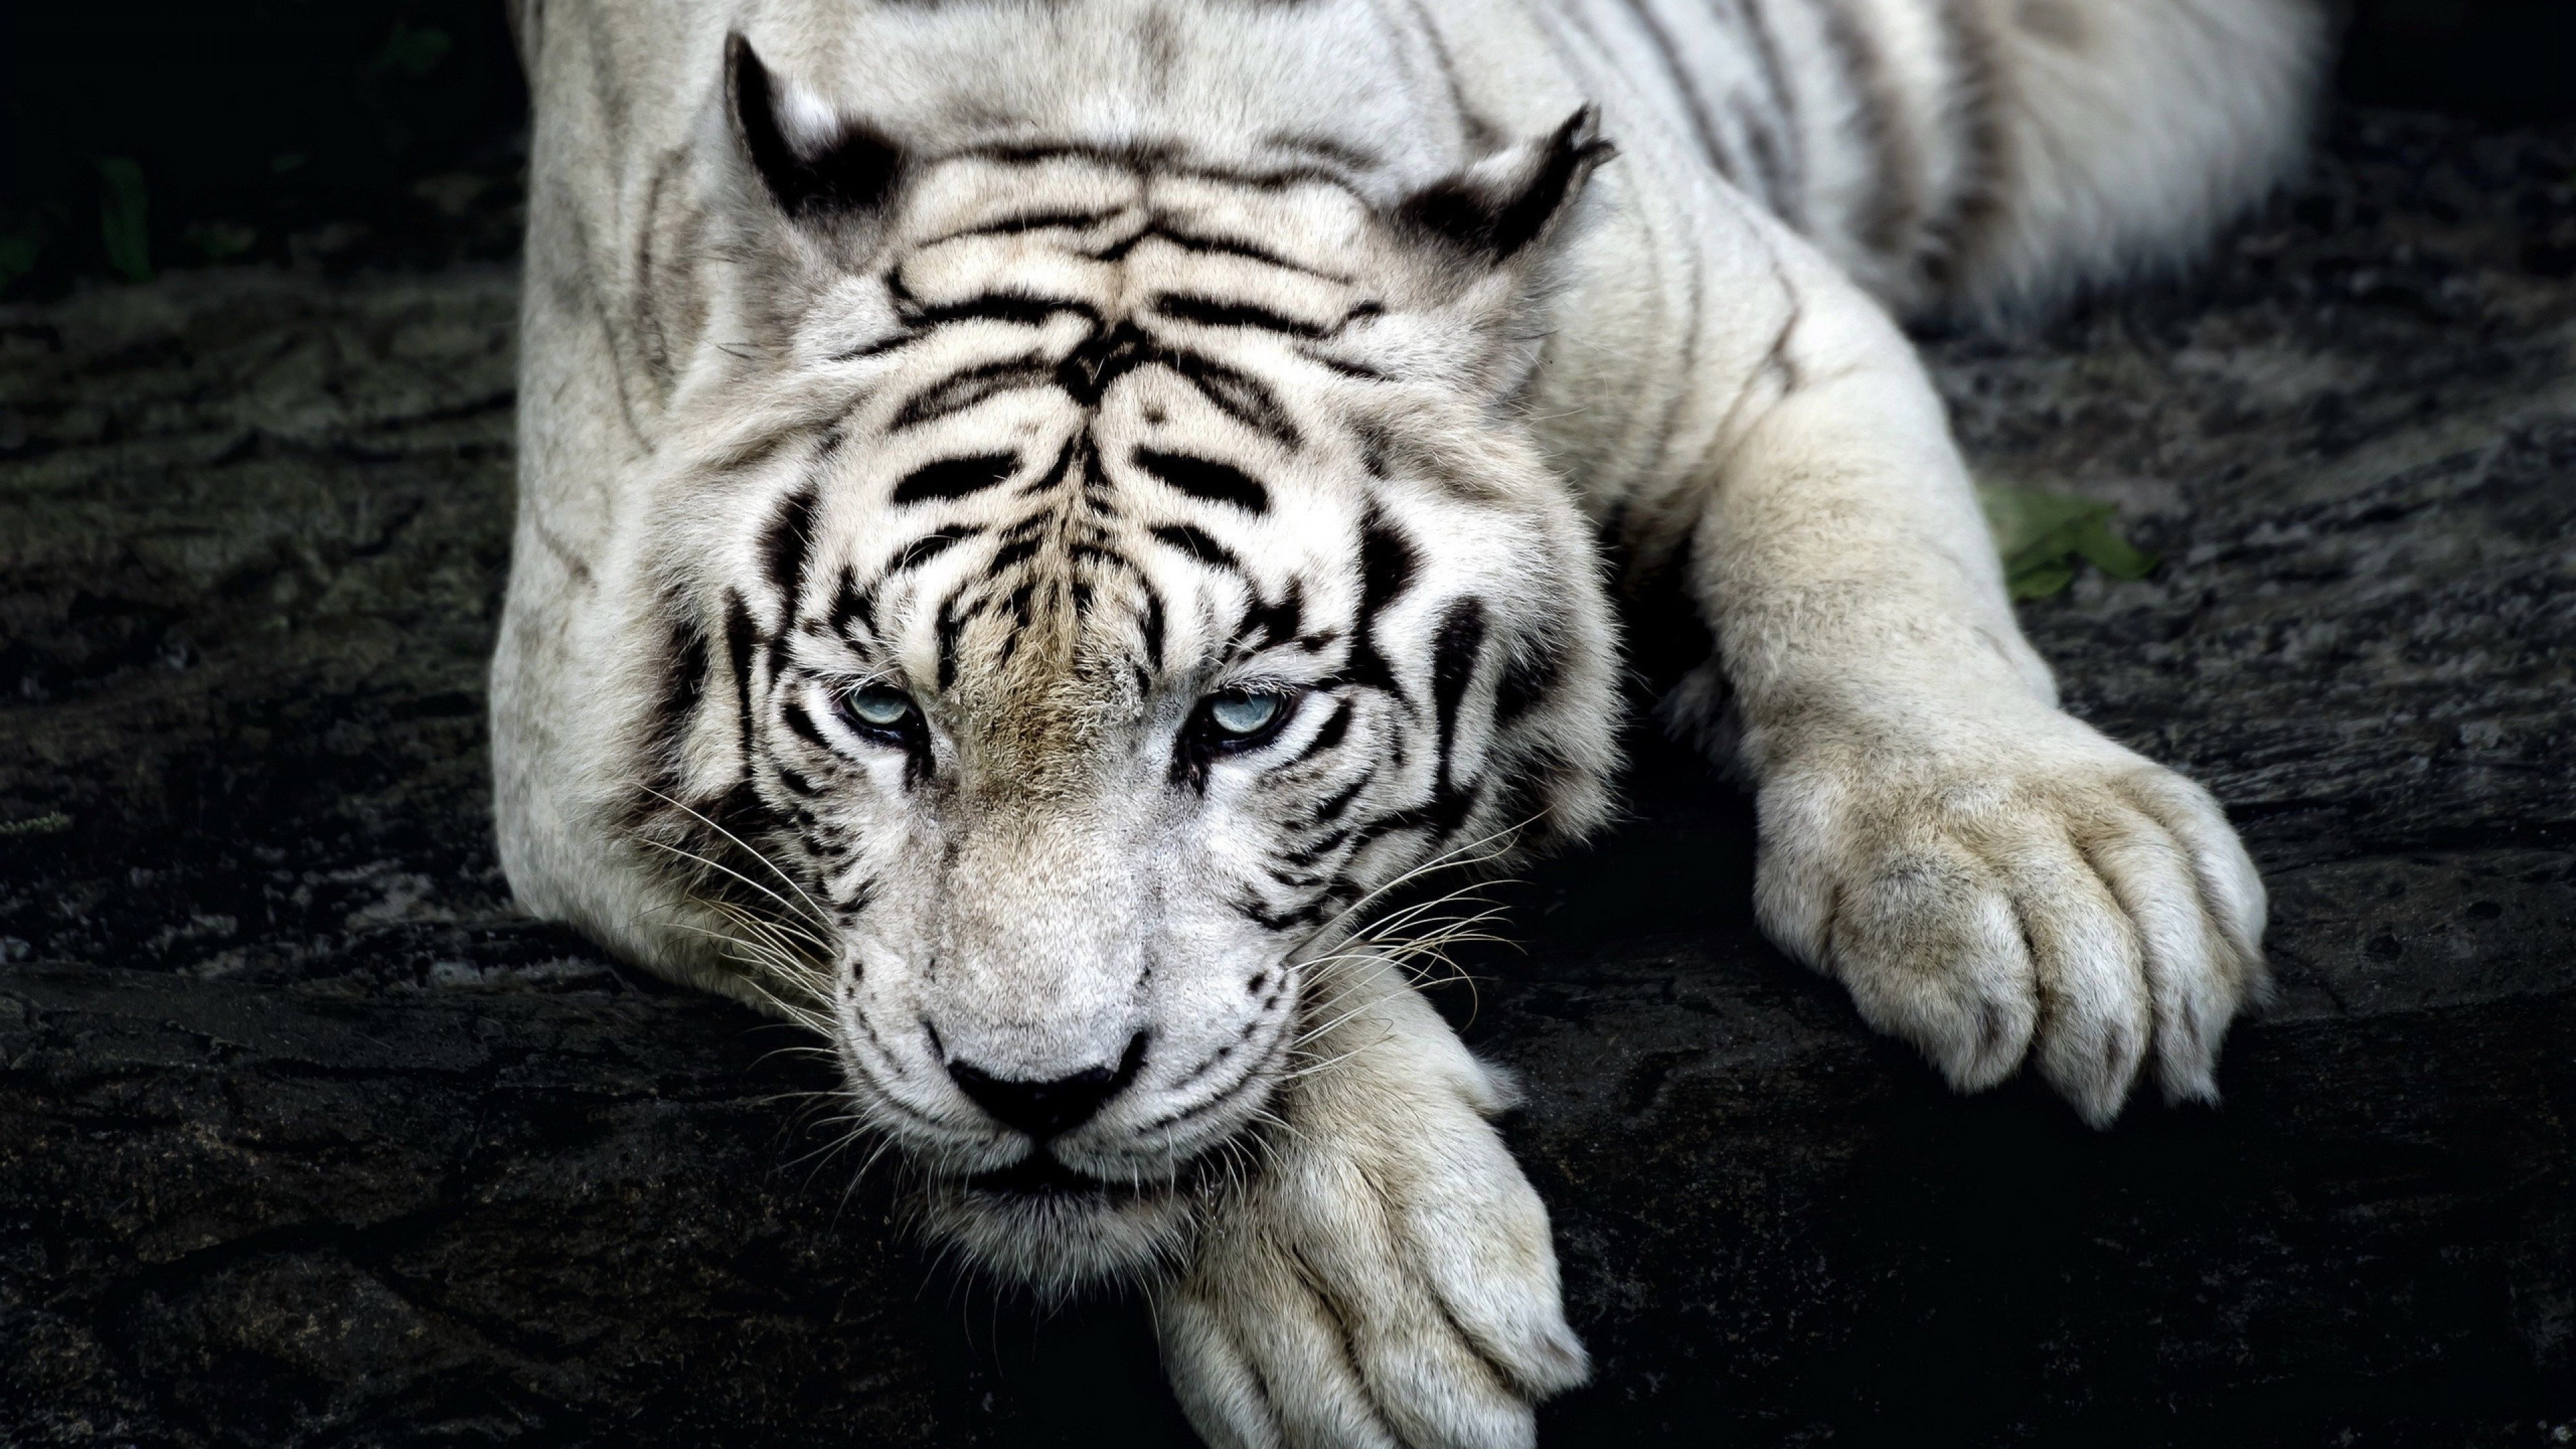 Wallpaper For Pc Tiger